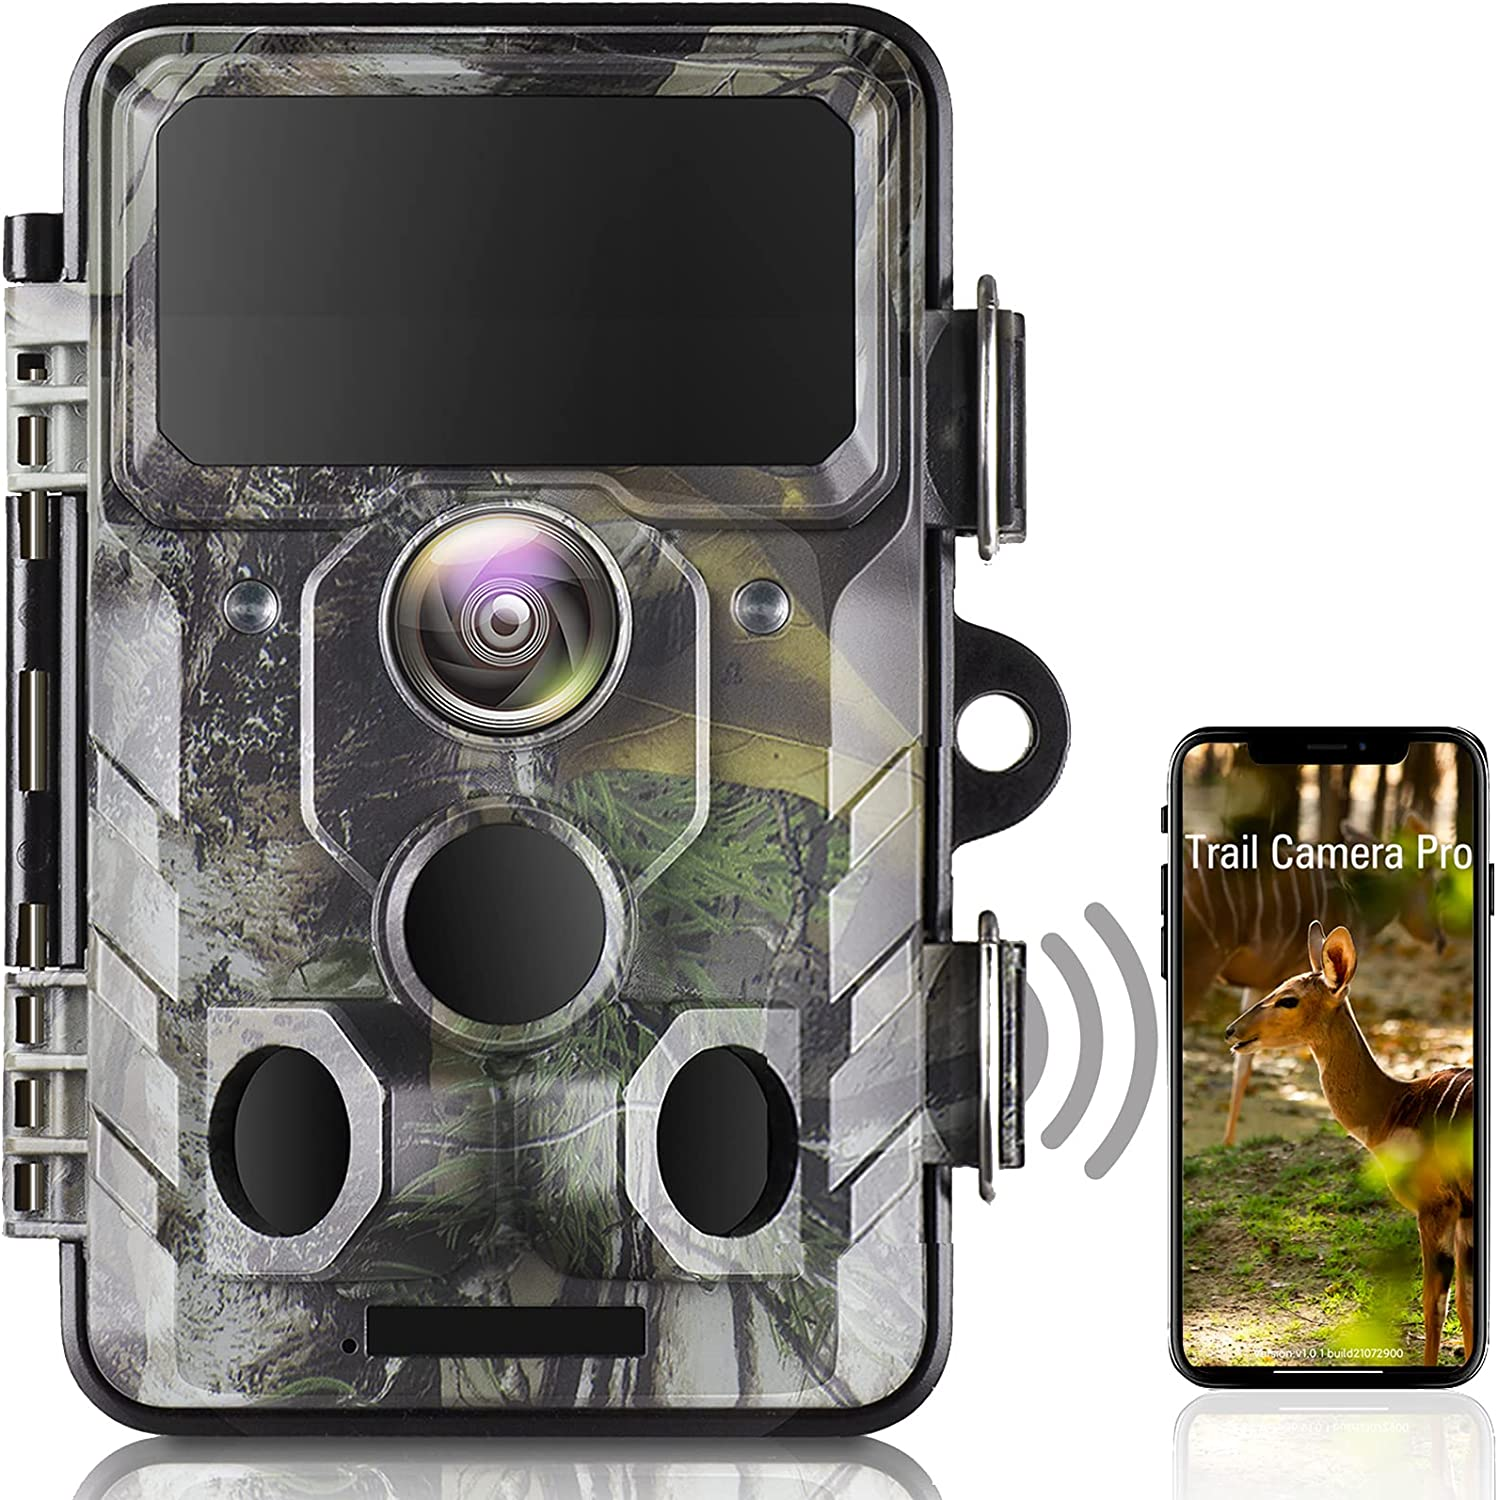 Upgraded WiFi Trail Camera OFFicial store 2021new shipping free shipping 20MP 1296P Bluetooth - C Game Hunting